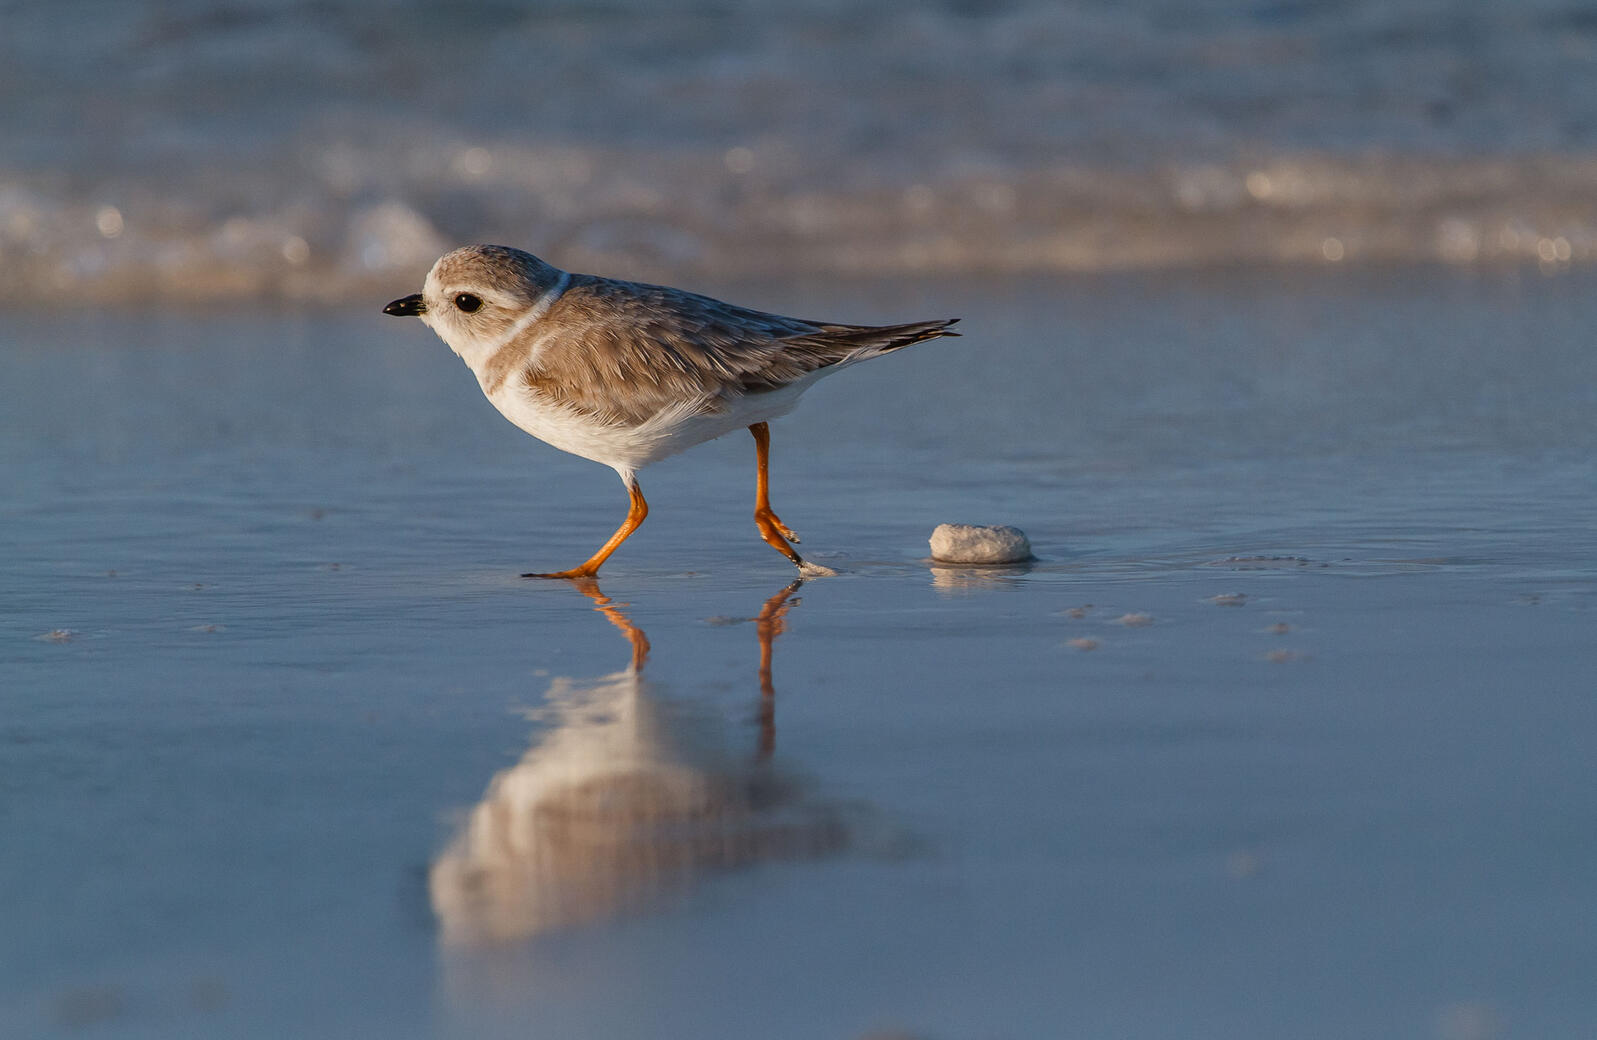 Proposed Mines in The Bahamas Threaten Winter Home of Migratory Shorebirds